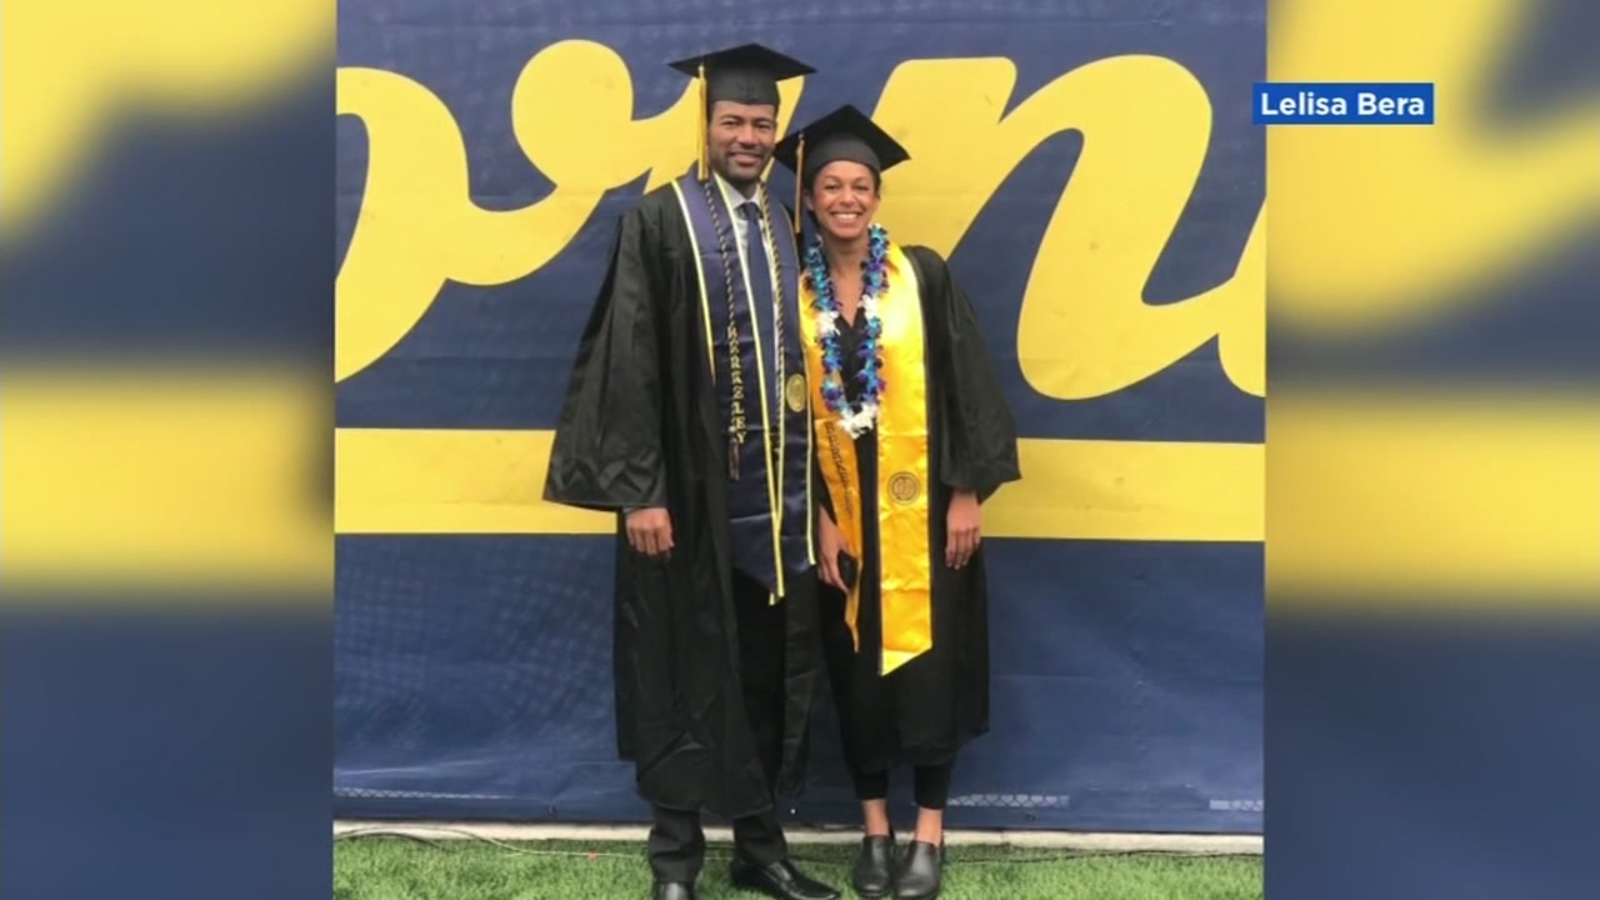 UC Berkeley students long journey to graduation started in Ethiopia